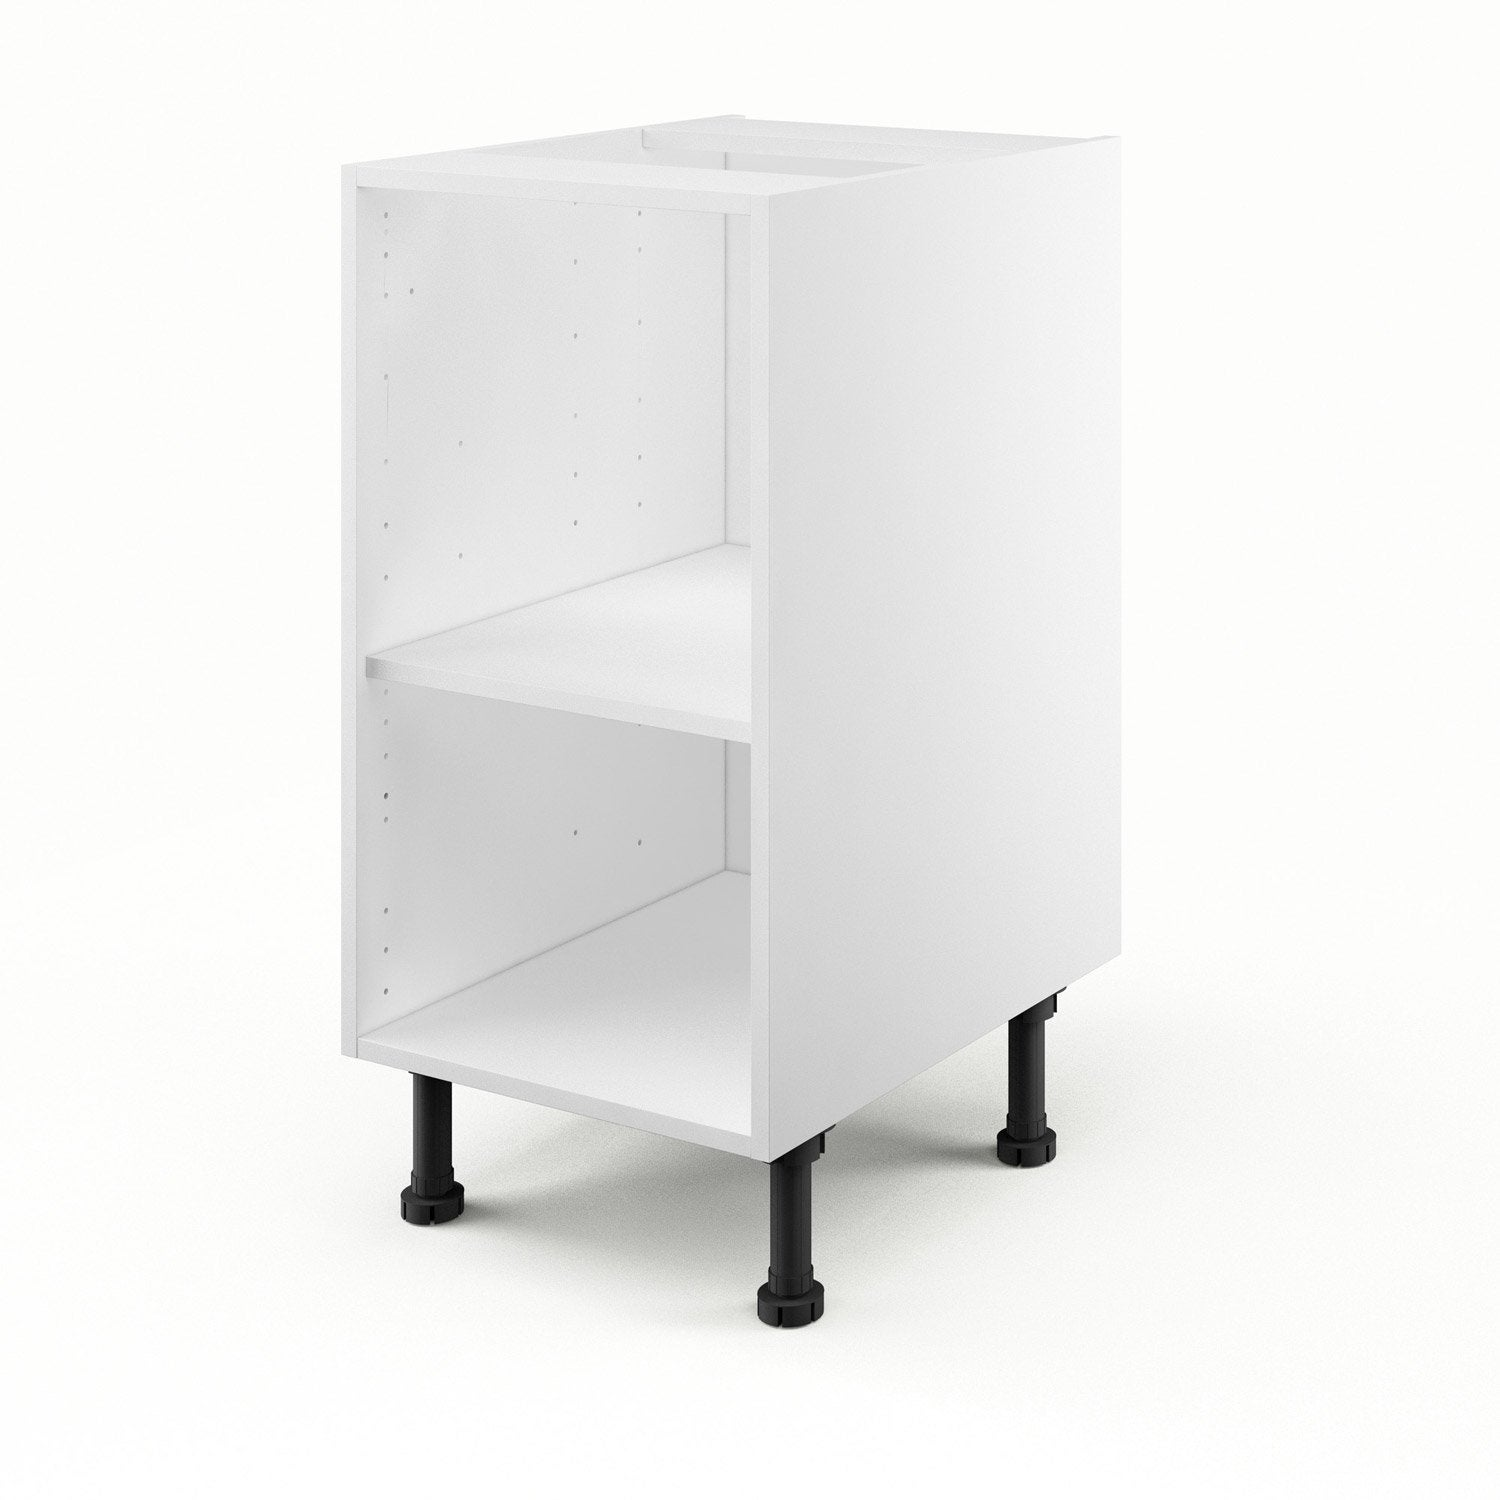 caisson de cuisine bas b40 delinia blanc x x p. Black Bedroom Furniture Sets. Home Design Ideas